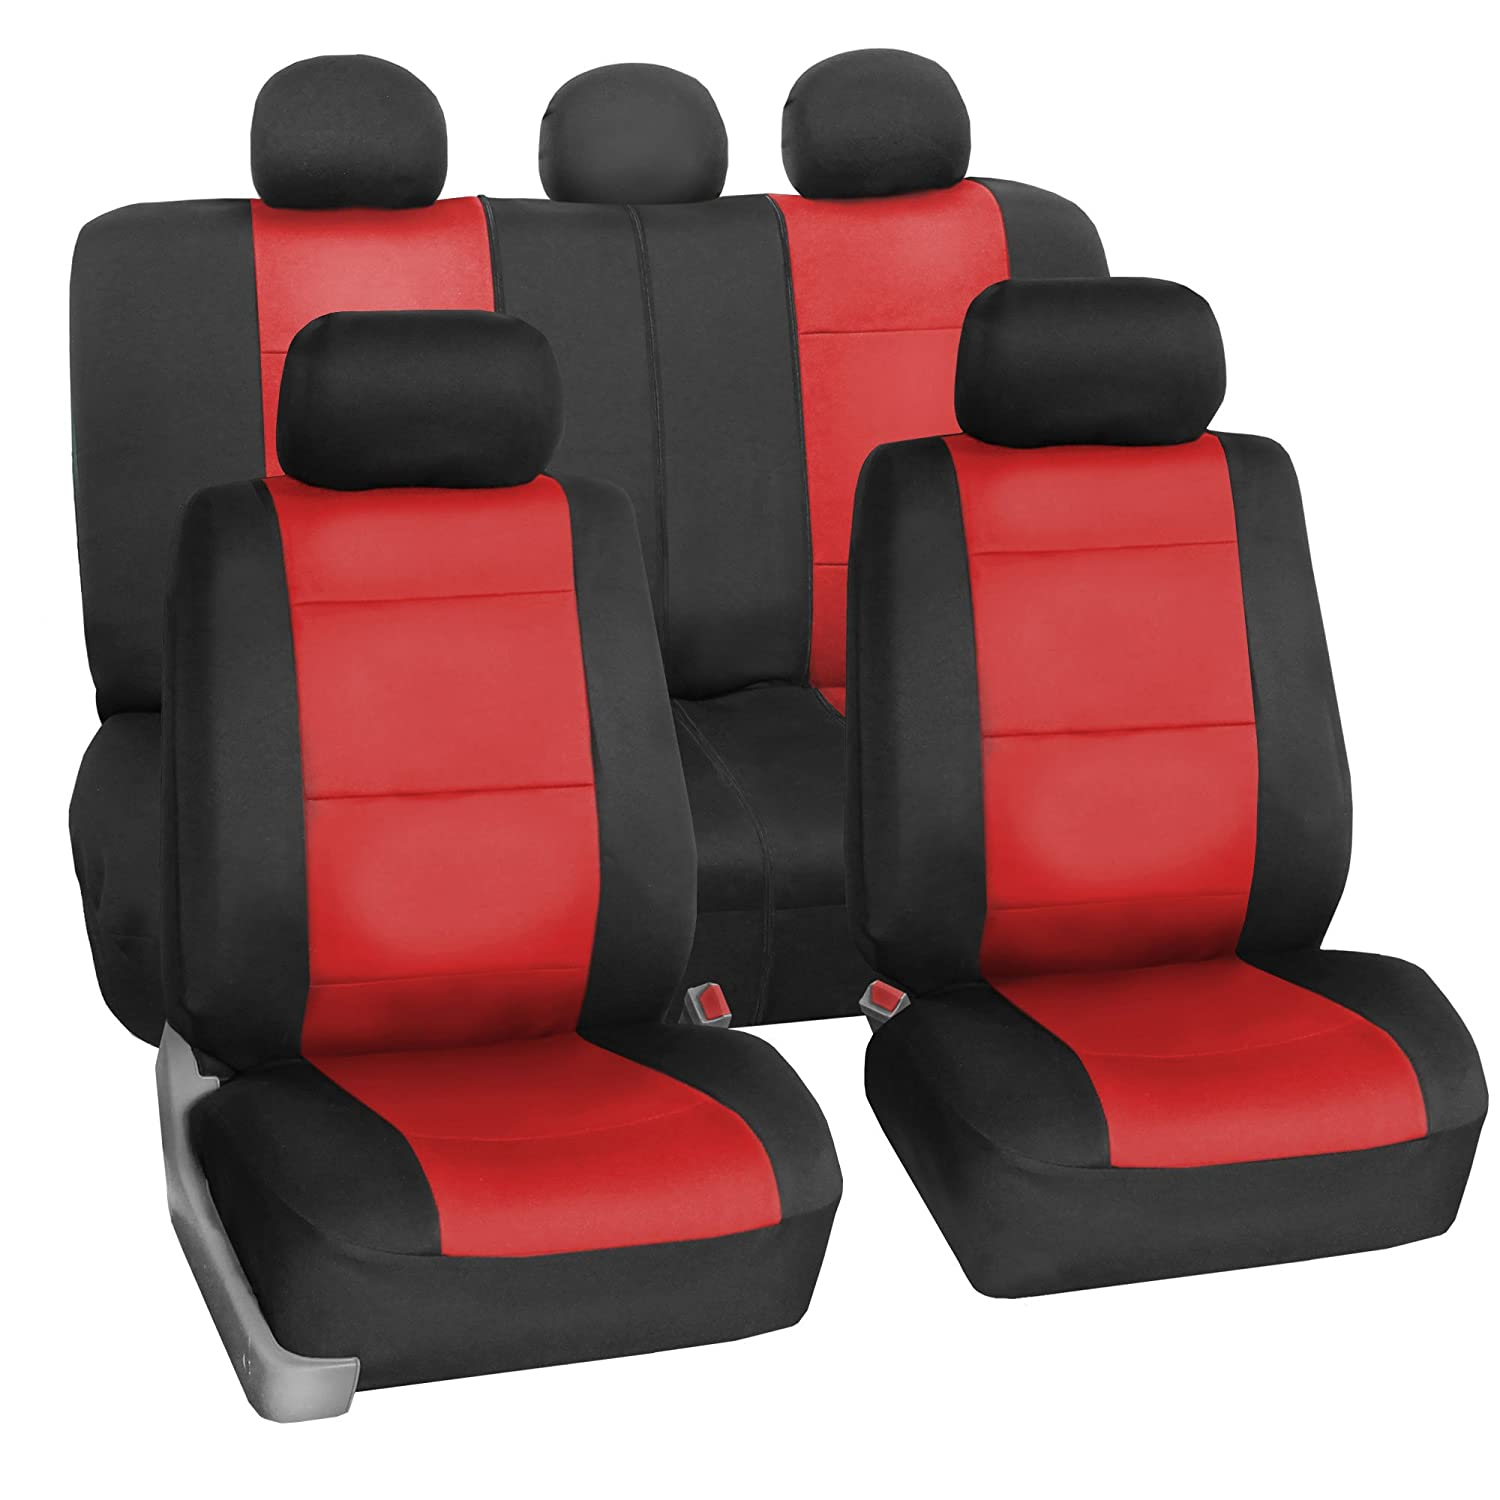 Amazon FH GROUP FB083115 Neoprene Waterproof Car Seat Covers Airbag Ready Rear Split Red Fit Most Truck Suv Or Van Automotive